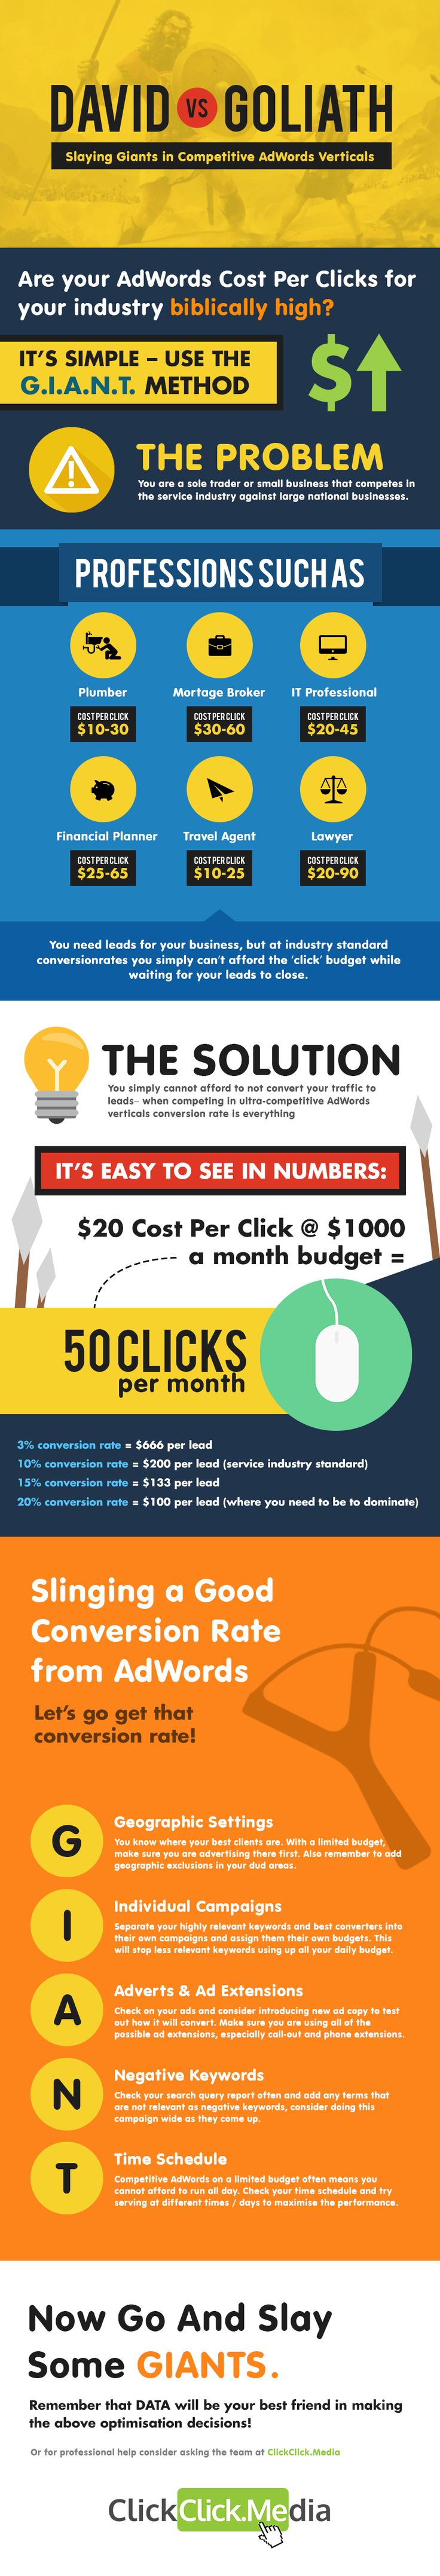 Are your AdWords Cost Per Clicks Too High? Struggling Against Large Companies with Huge Budgets? Learn How To Compete with a Good Conversion Rate!